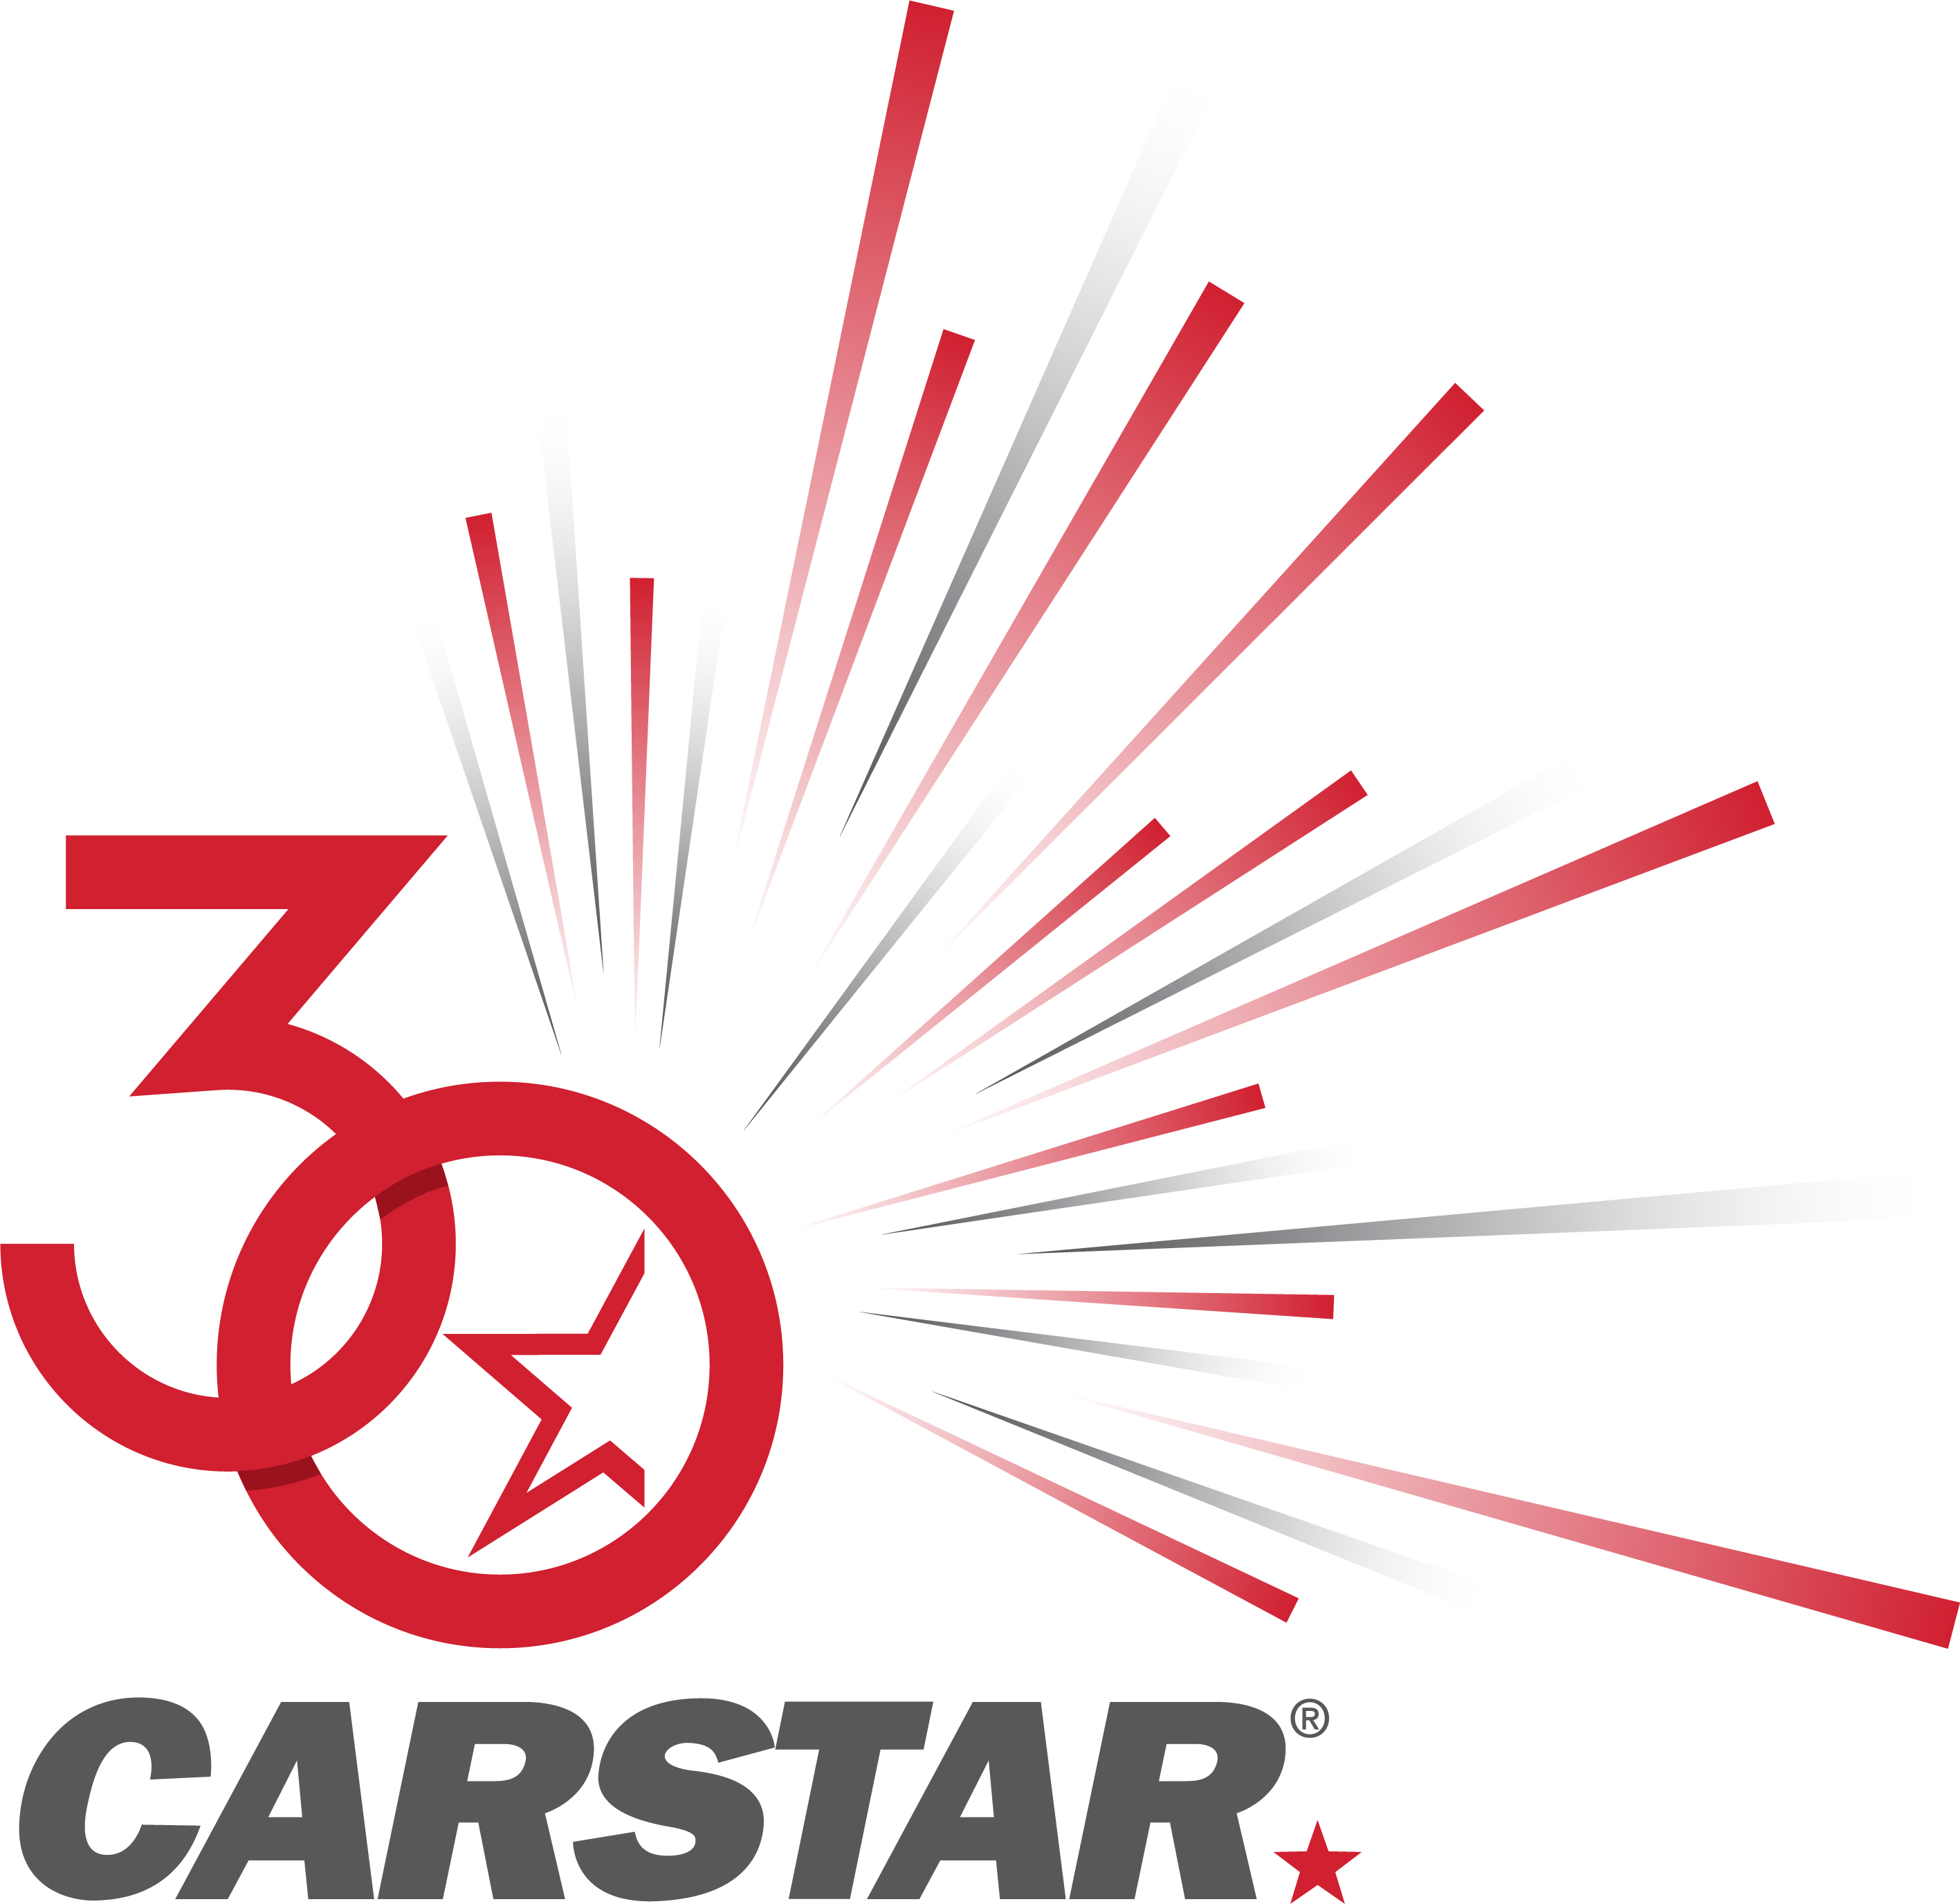 Performance In CARSTAR Drives Corporate Growth